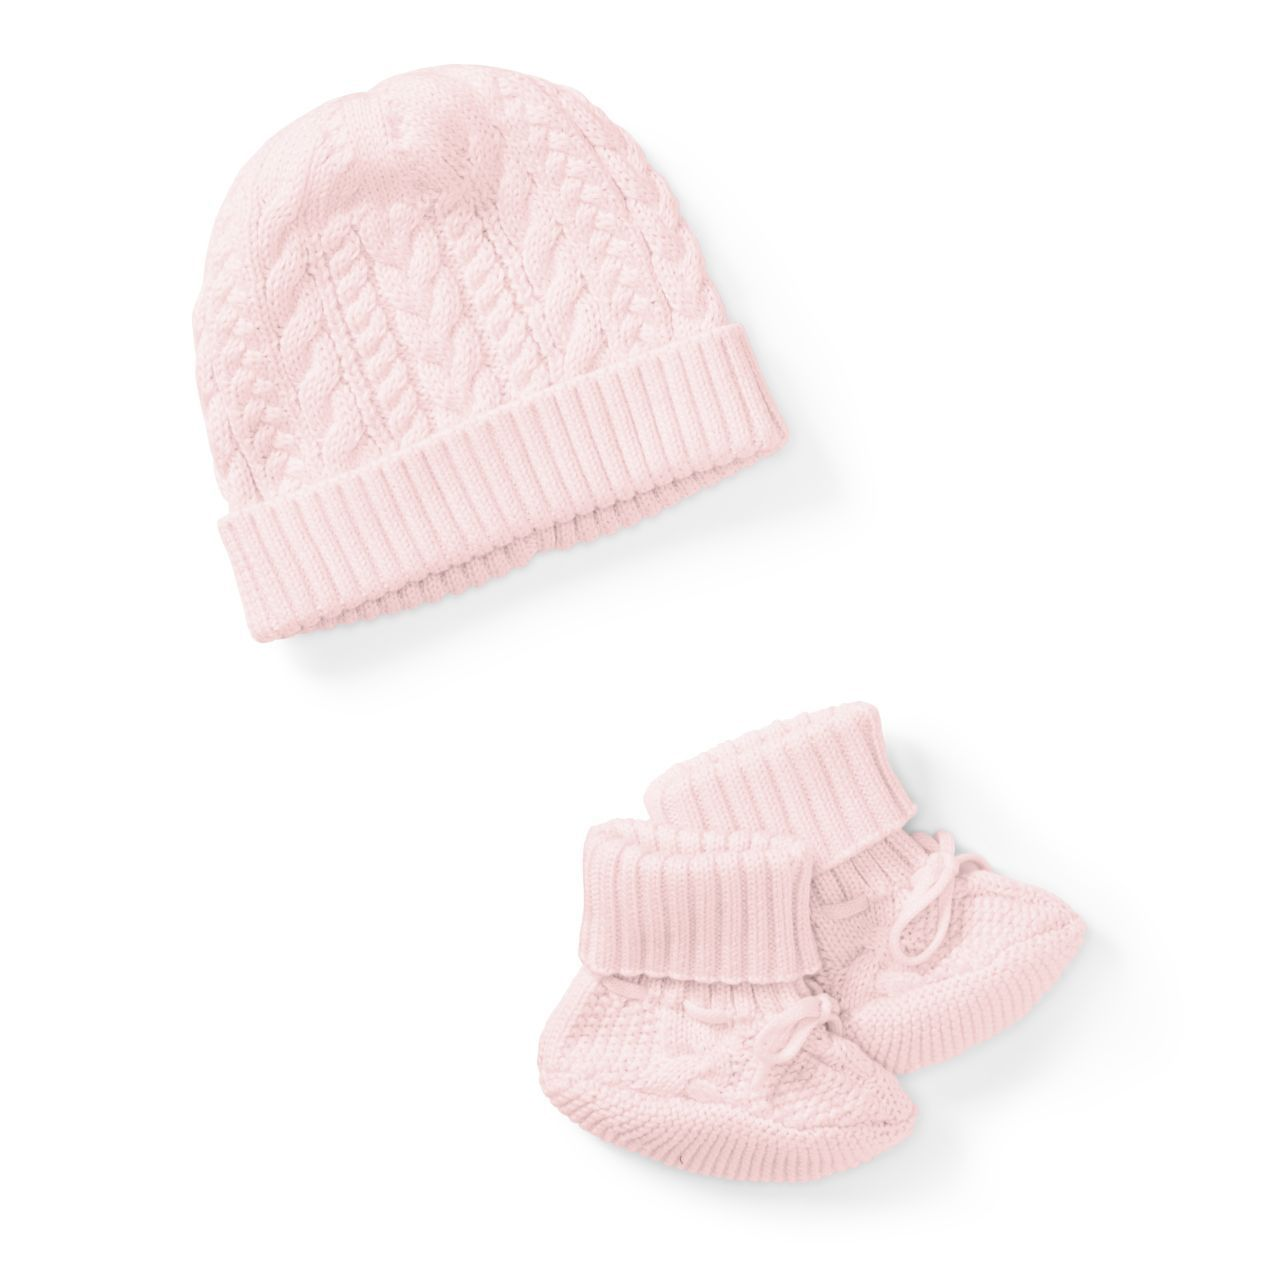 ◎送料込み◎Cotton Hat & Booties Set